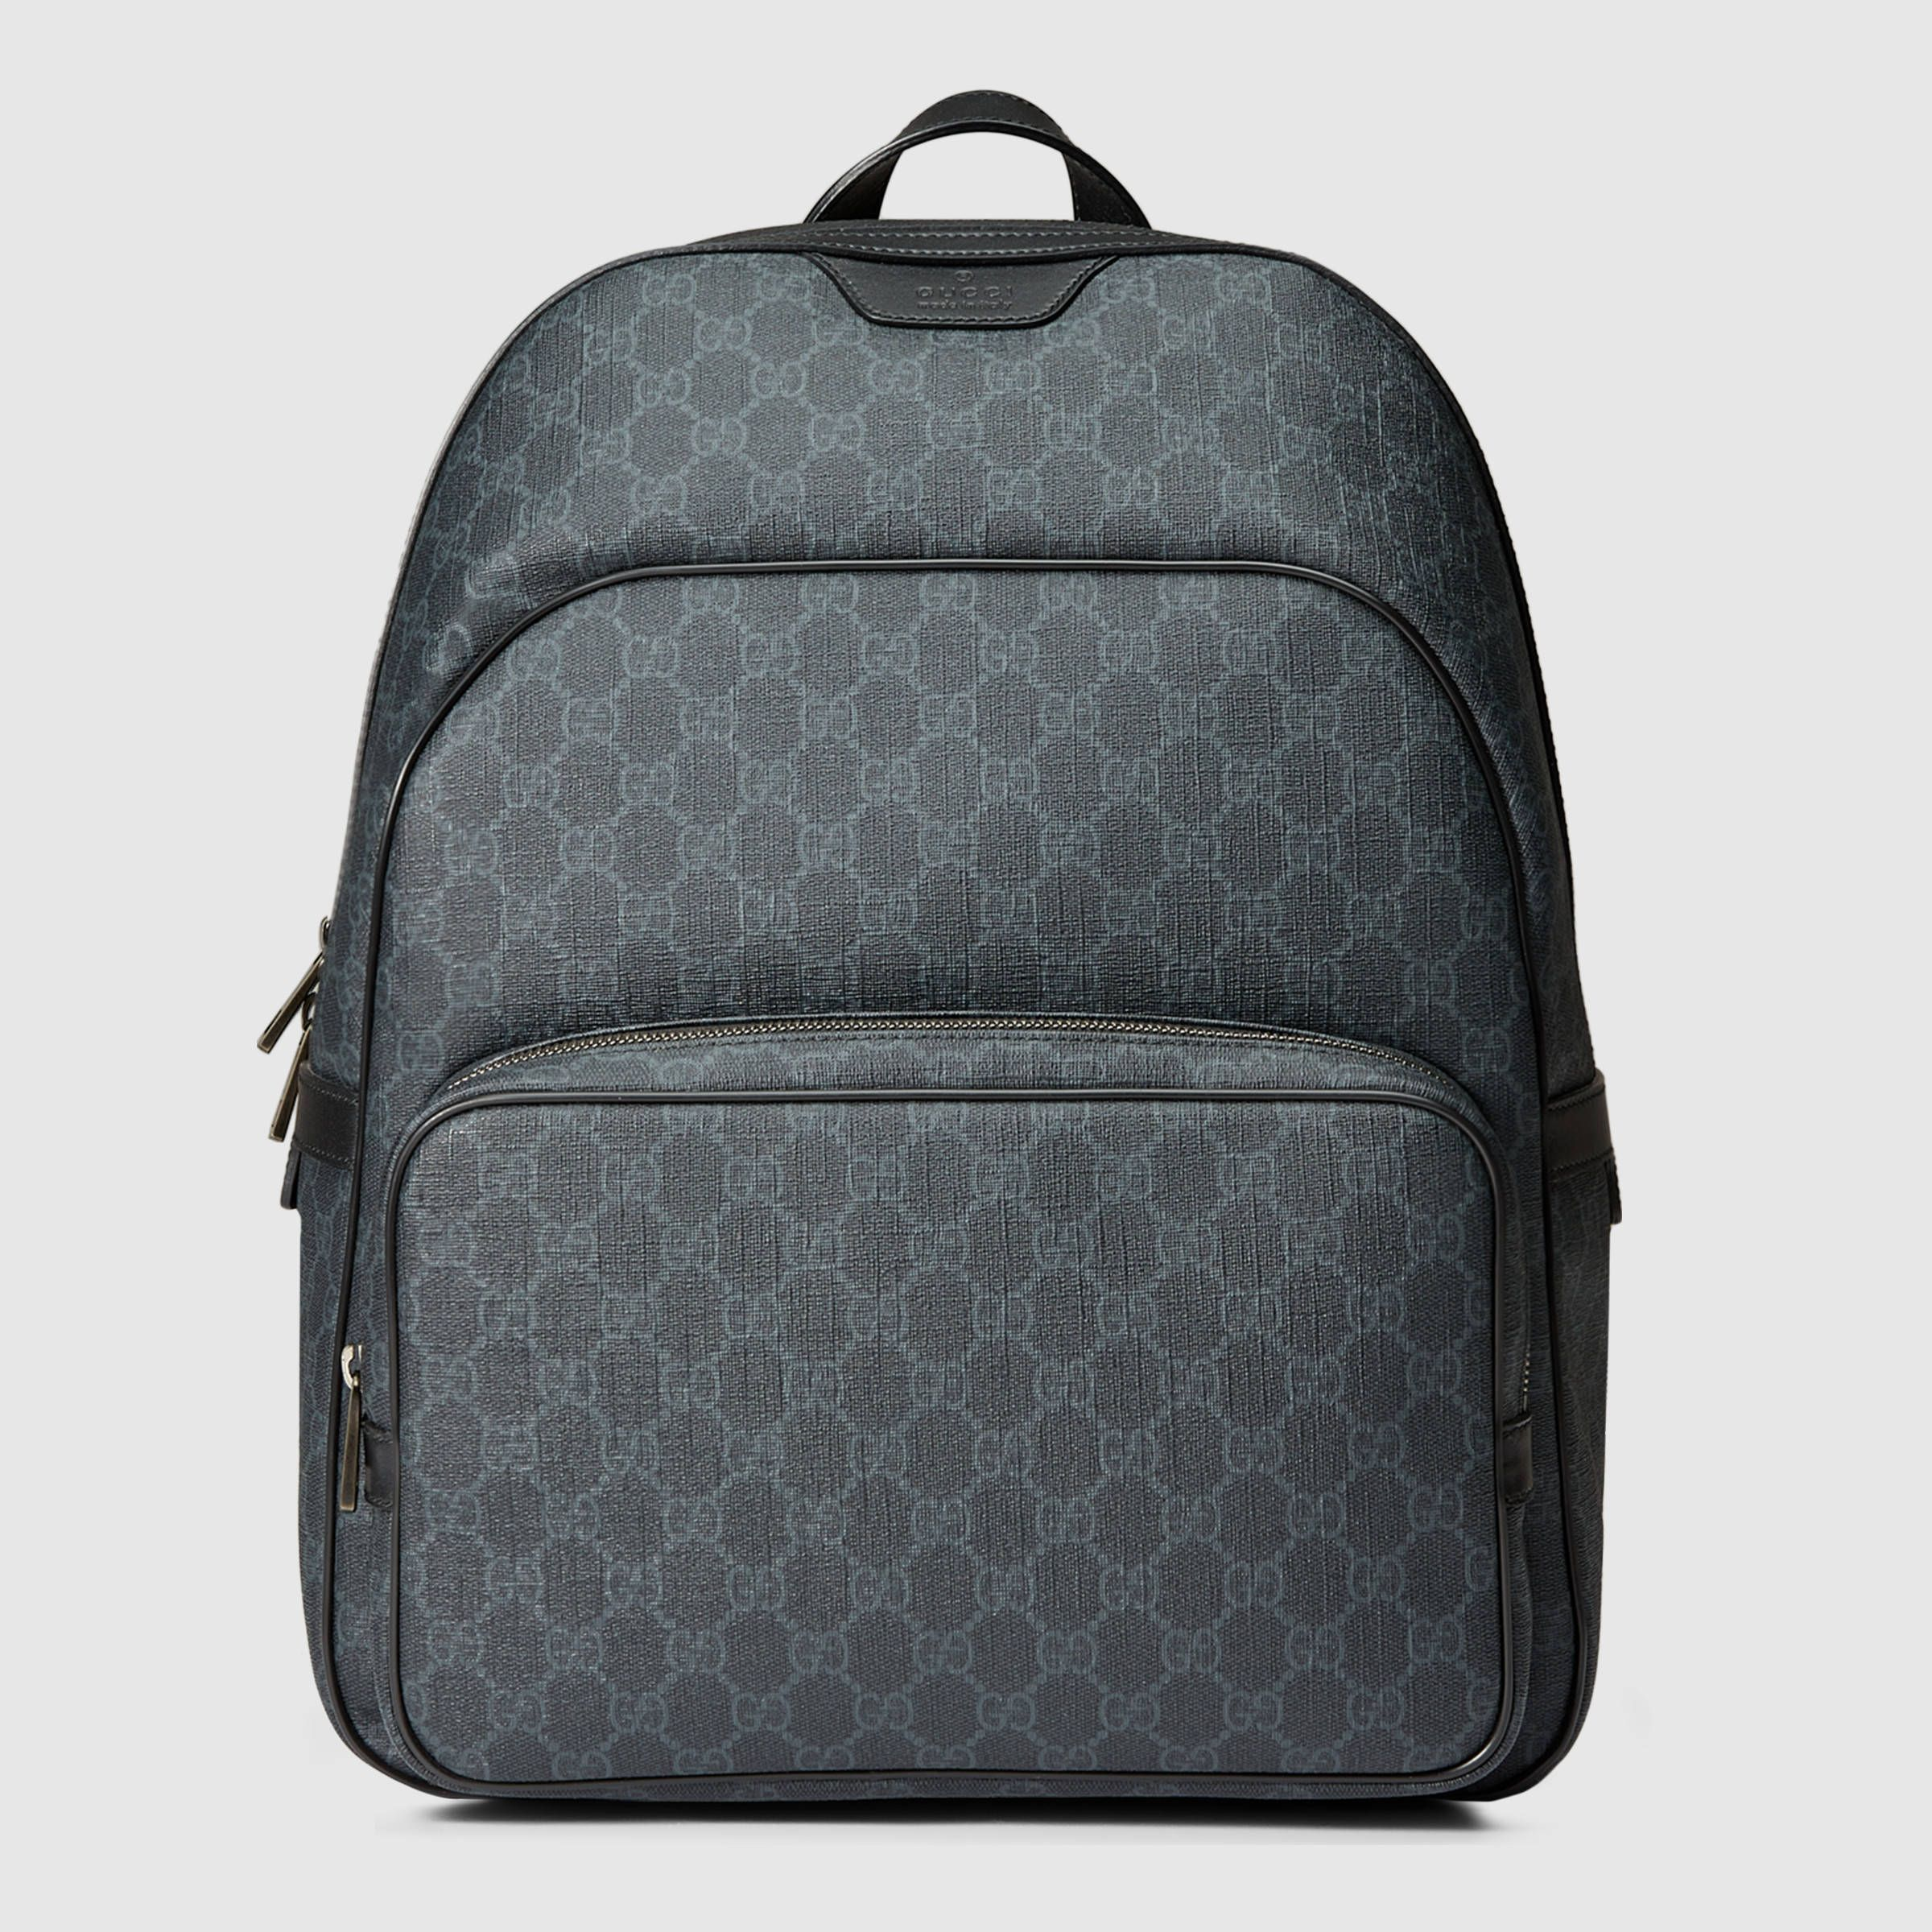 gucci book bags for men. gucci gg supreme backpack book bags for men m